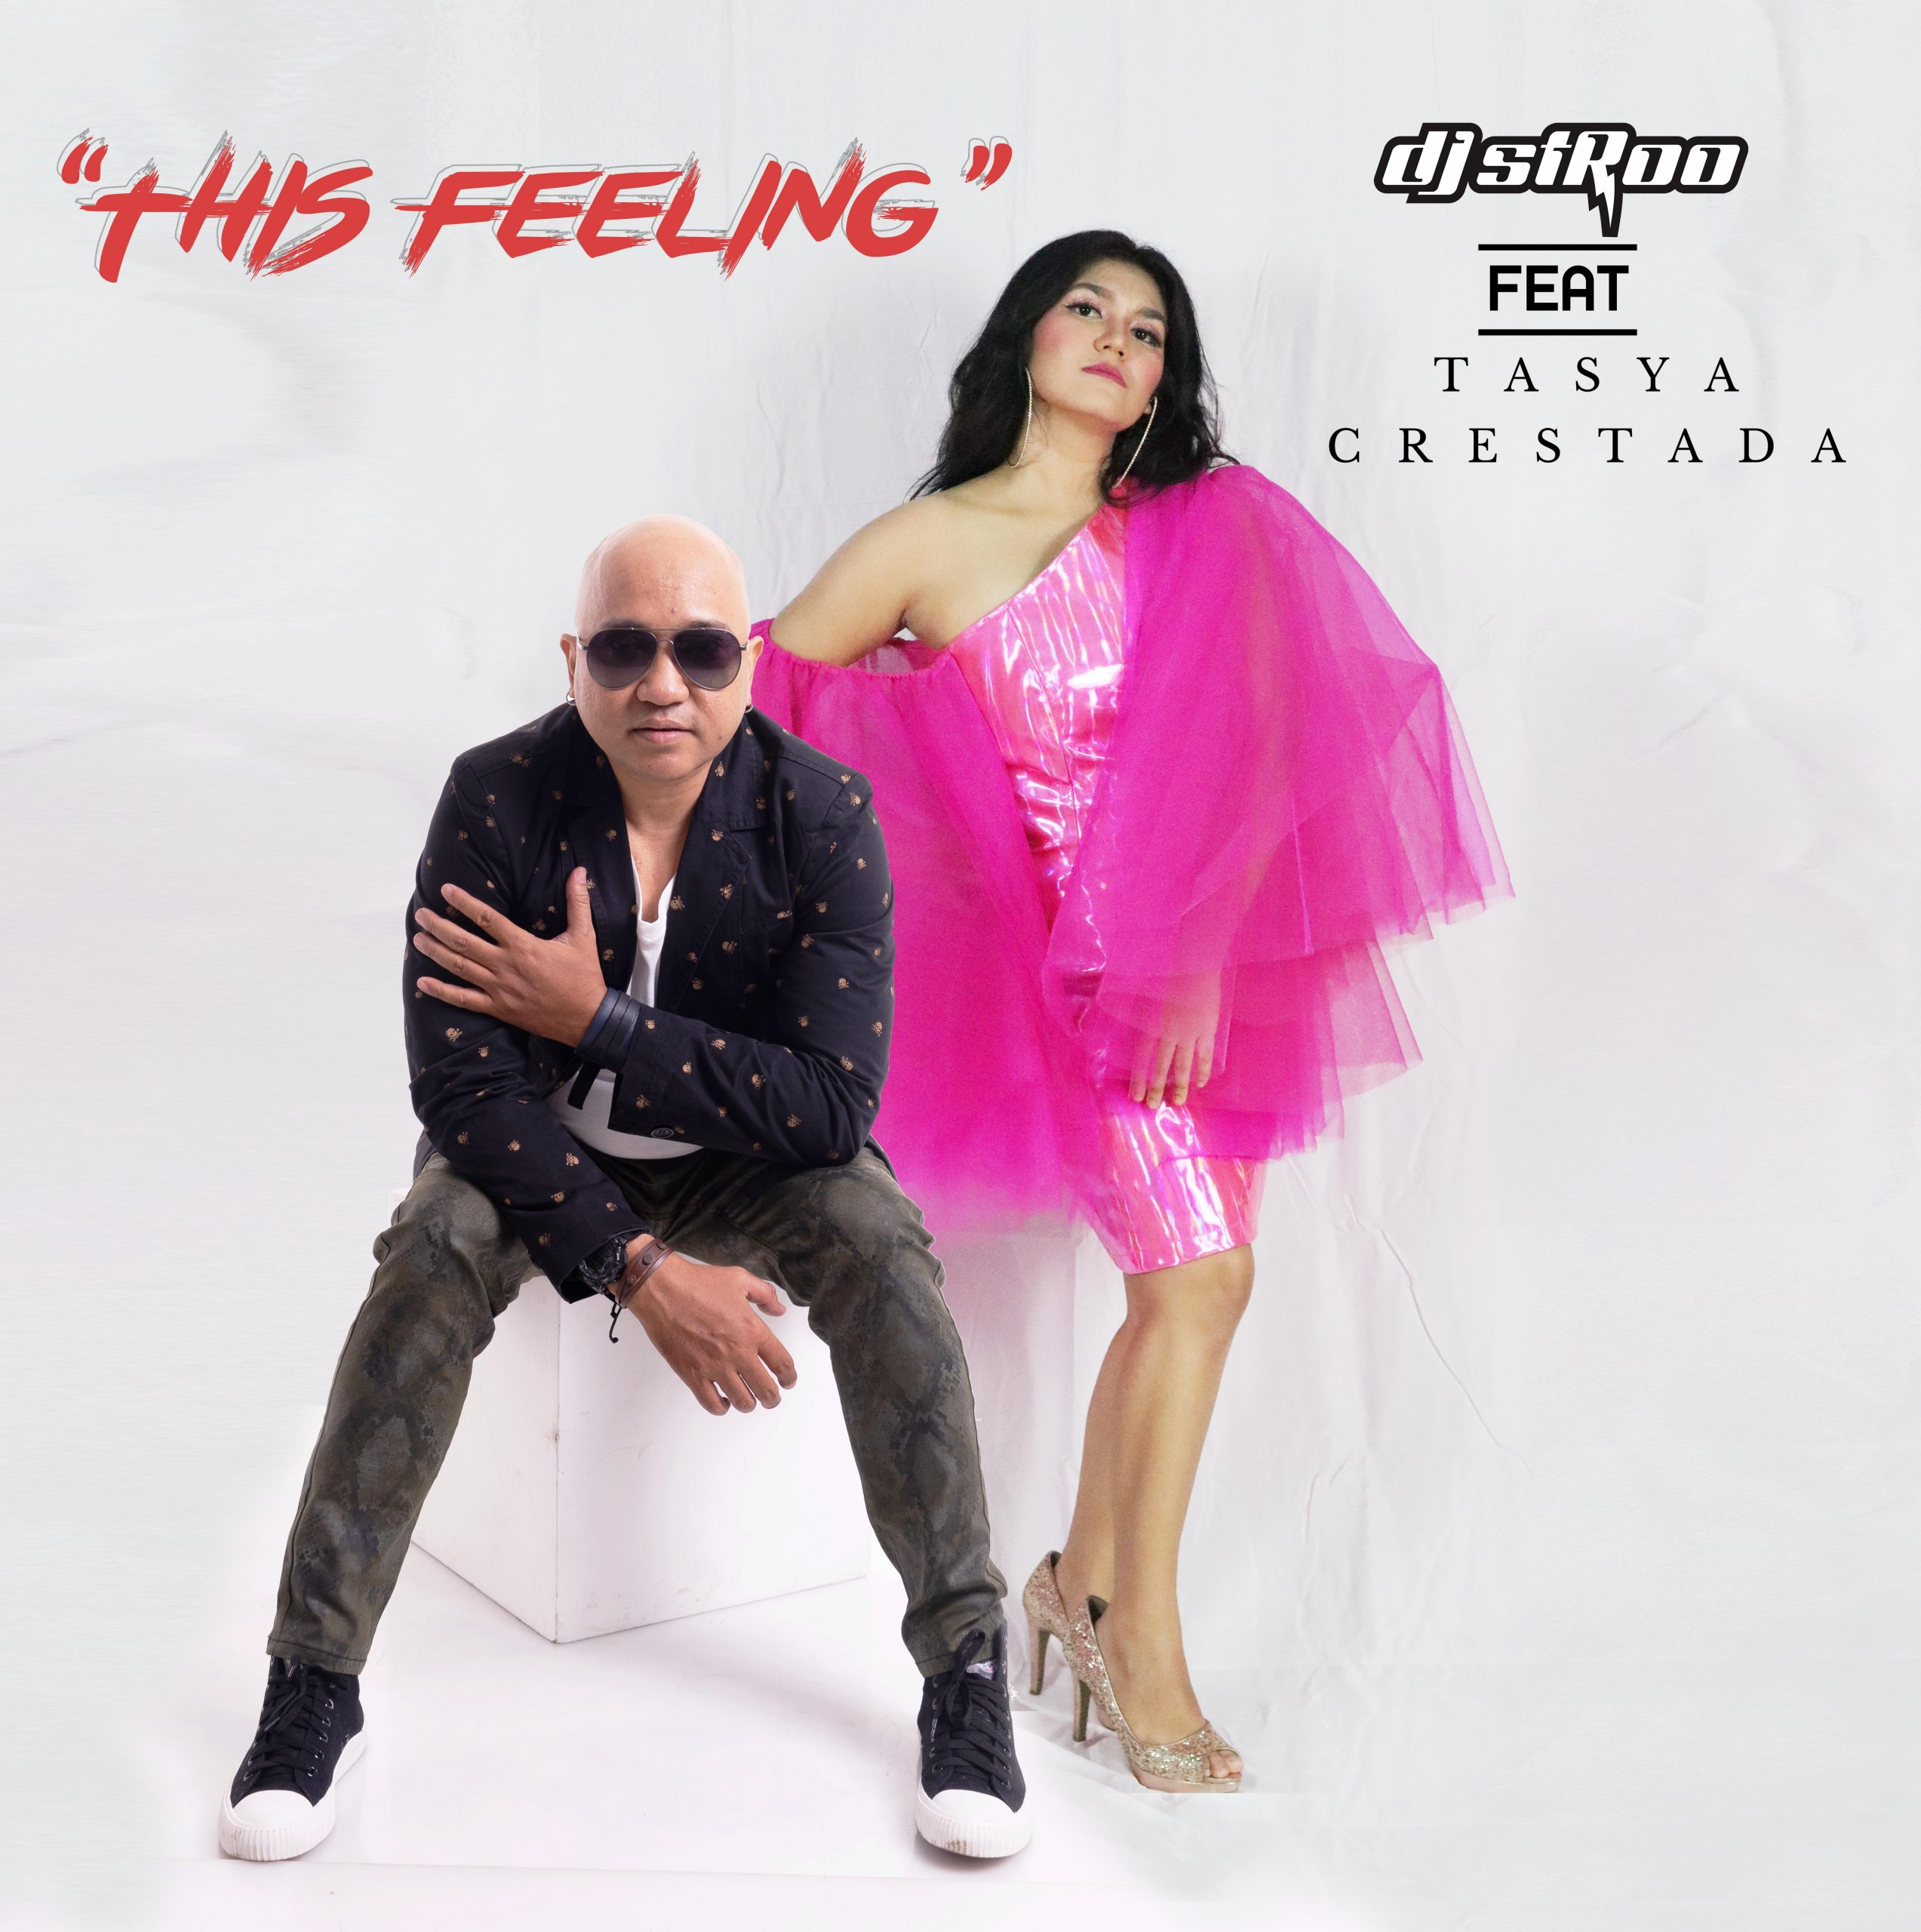 """This Feeling"" Single DJ Stroo Feat Tasya Crestada Di Tengah Pandemi"